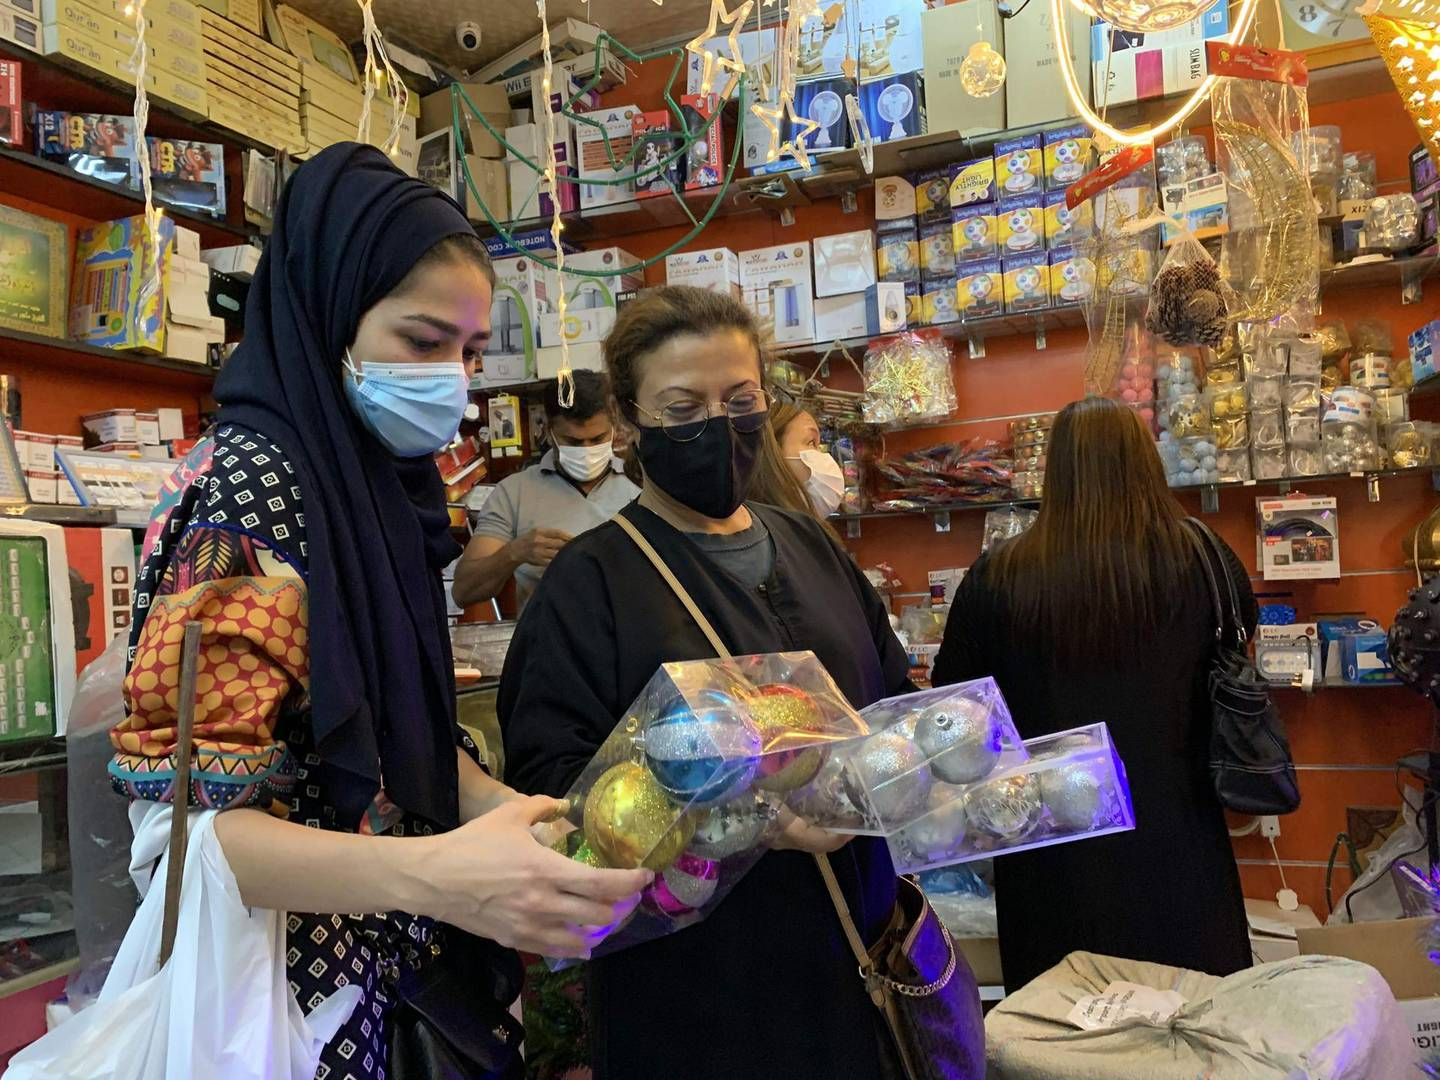 Expats living in Saudi Arabia choose Christmas decorations at a gift shop in the capital Riyadh on December 7, 2020. Until barely three years ago, such items were almost impossible to be openly sold in Saudi Arabia, where authorities have clipped the powers of the clerical establishment long notorious for enforcing Islamic traditions. For decades, Christmas sales were largely underground, and Christians from the Philippines, Lebanon and other countries celebrated the festival behind closed doors or in expat enclaves. / AFP / FAYEZ NURELDINE